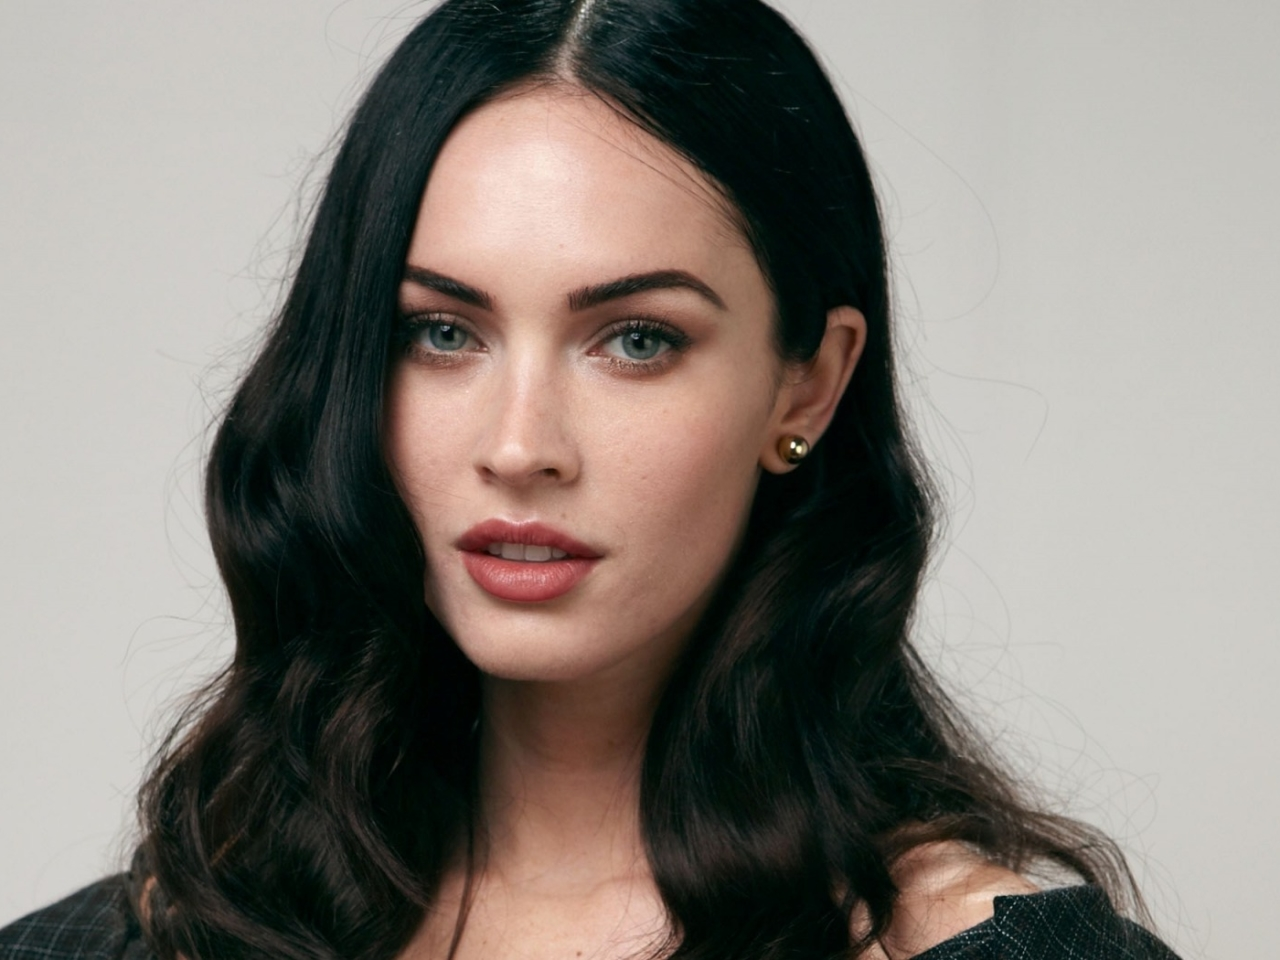 1280x960 Megan Fox Black Hair Makeup 1280x960 Resolution Wallpaper Hd Celebrities 4k Wallpapers Images Photos And Background